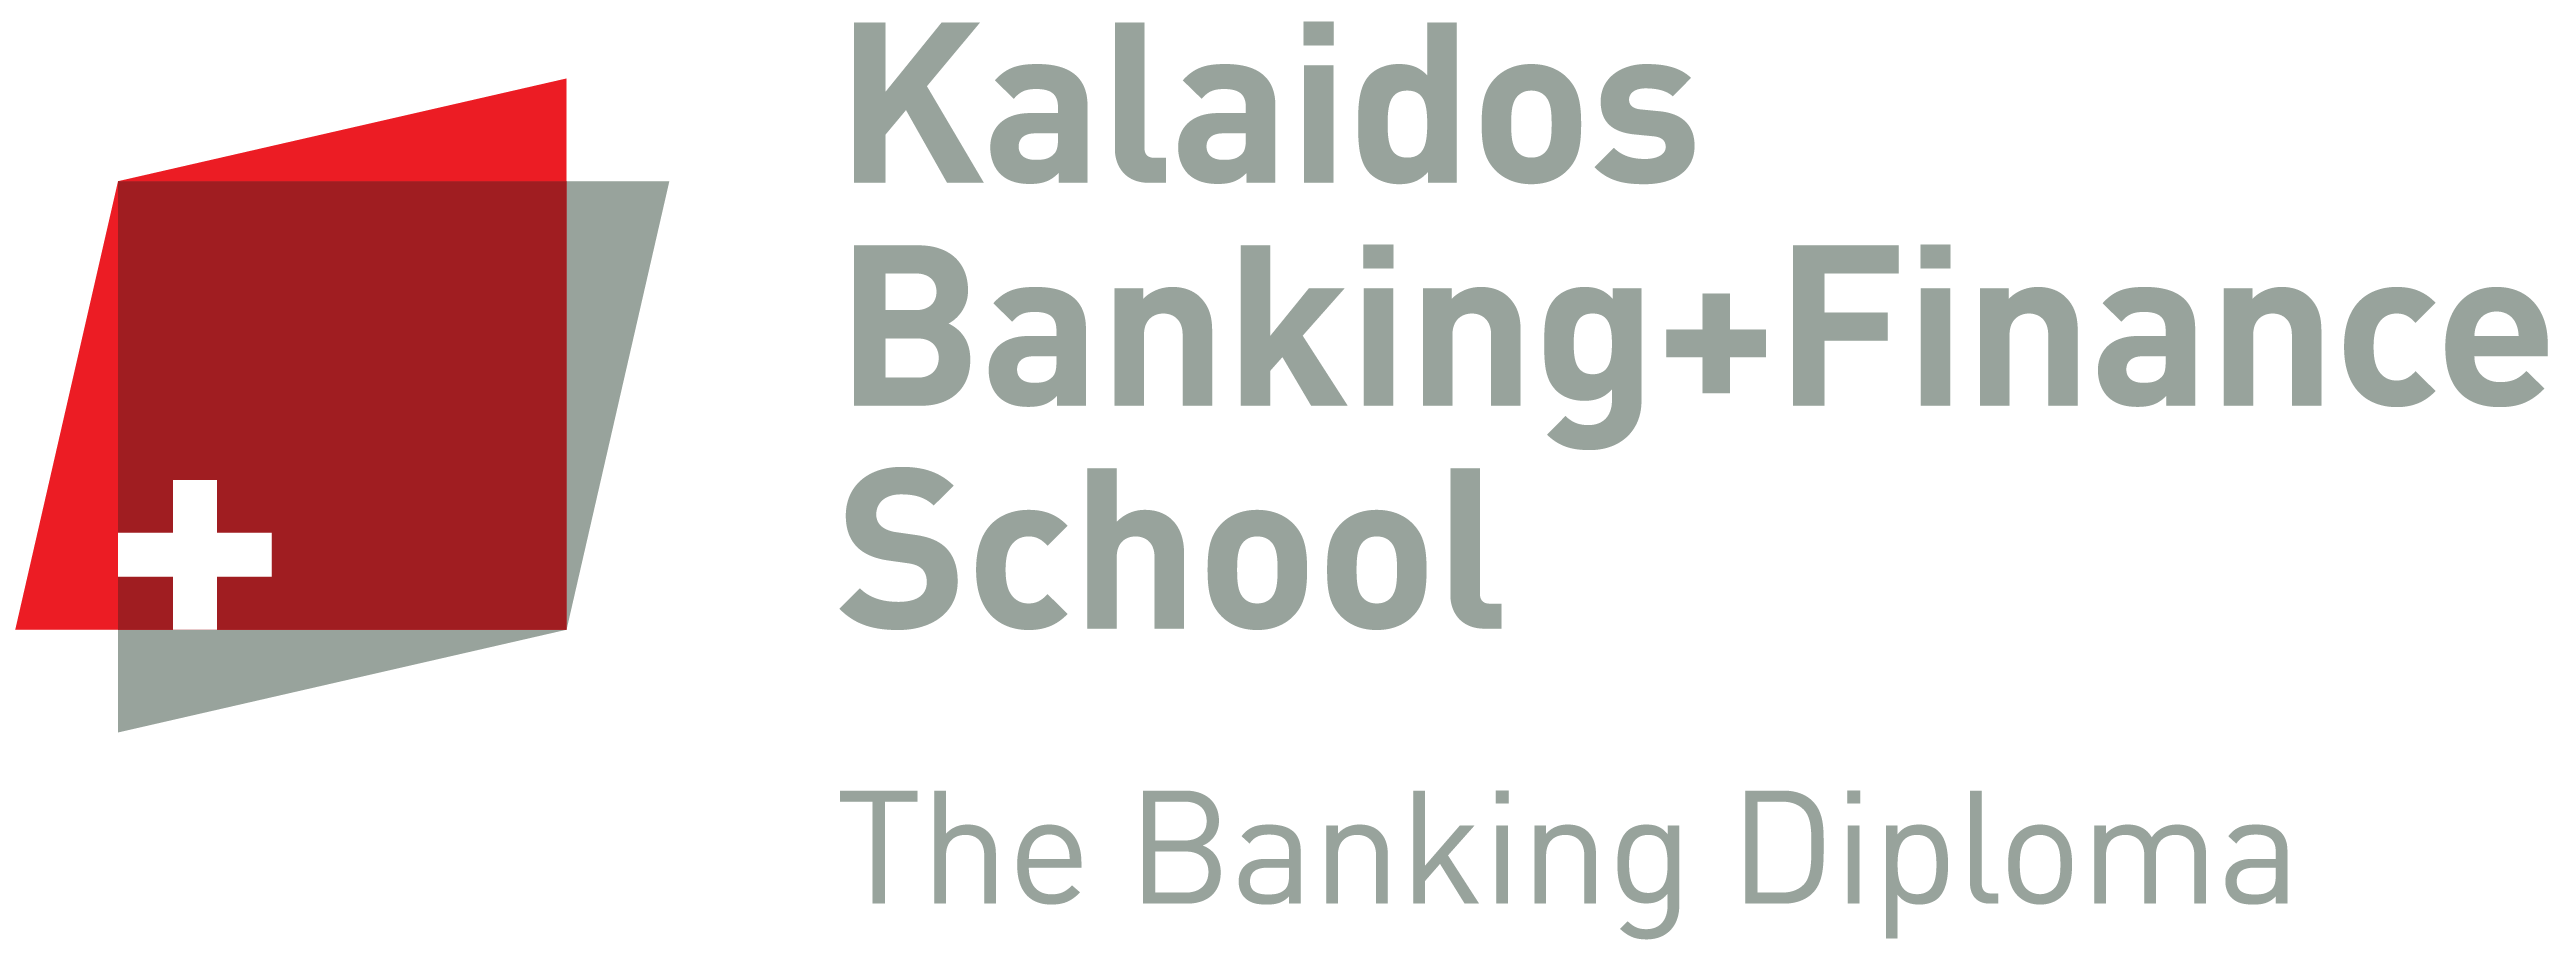 Logo Kalaidos Banking+Finance School